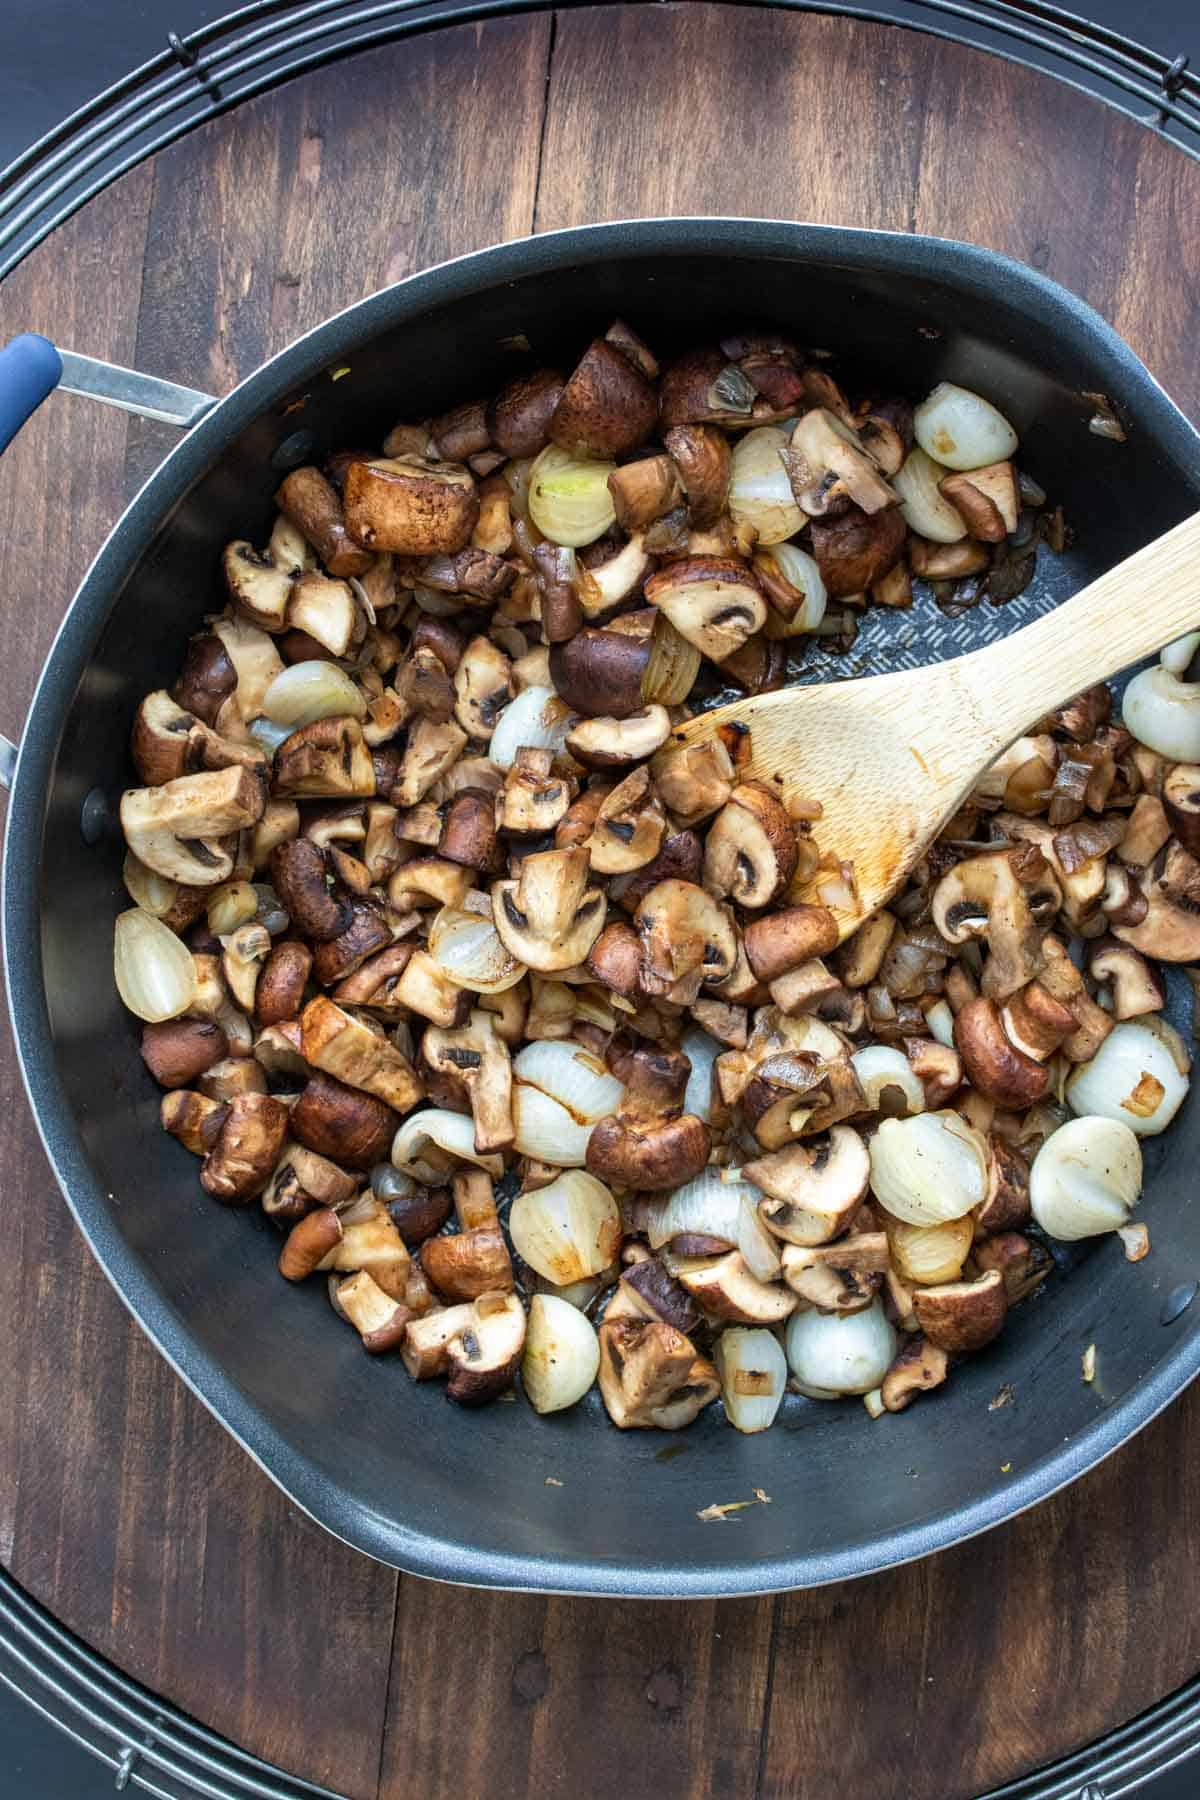 Wooden spoon mixing pearl onions and mushrooms in a pan